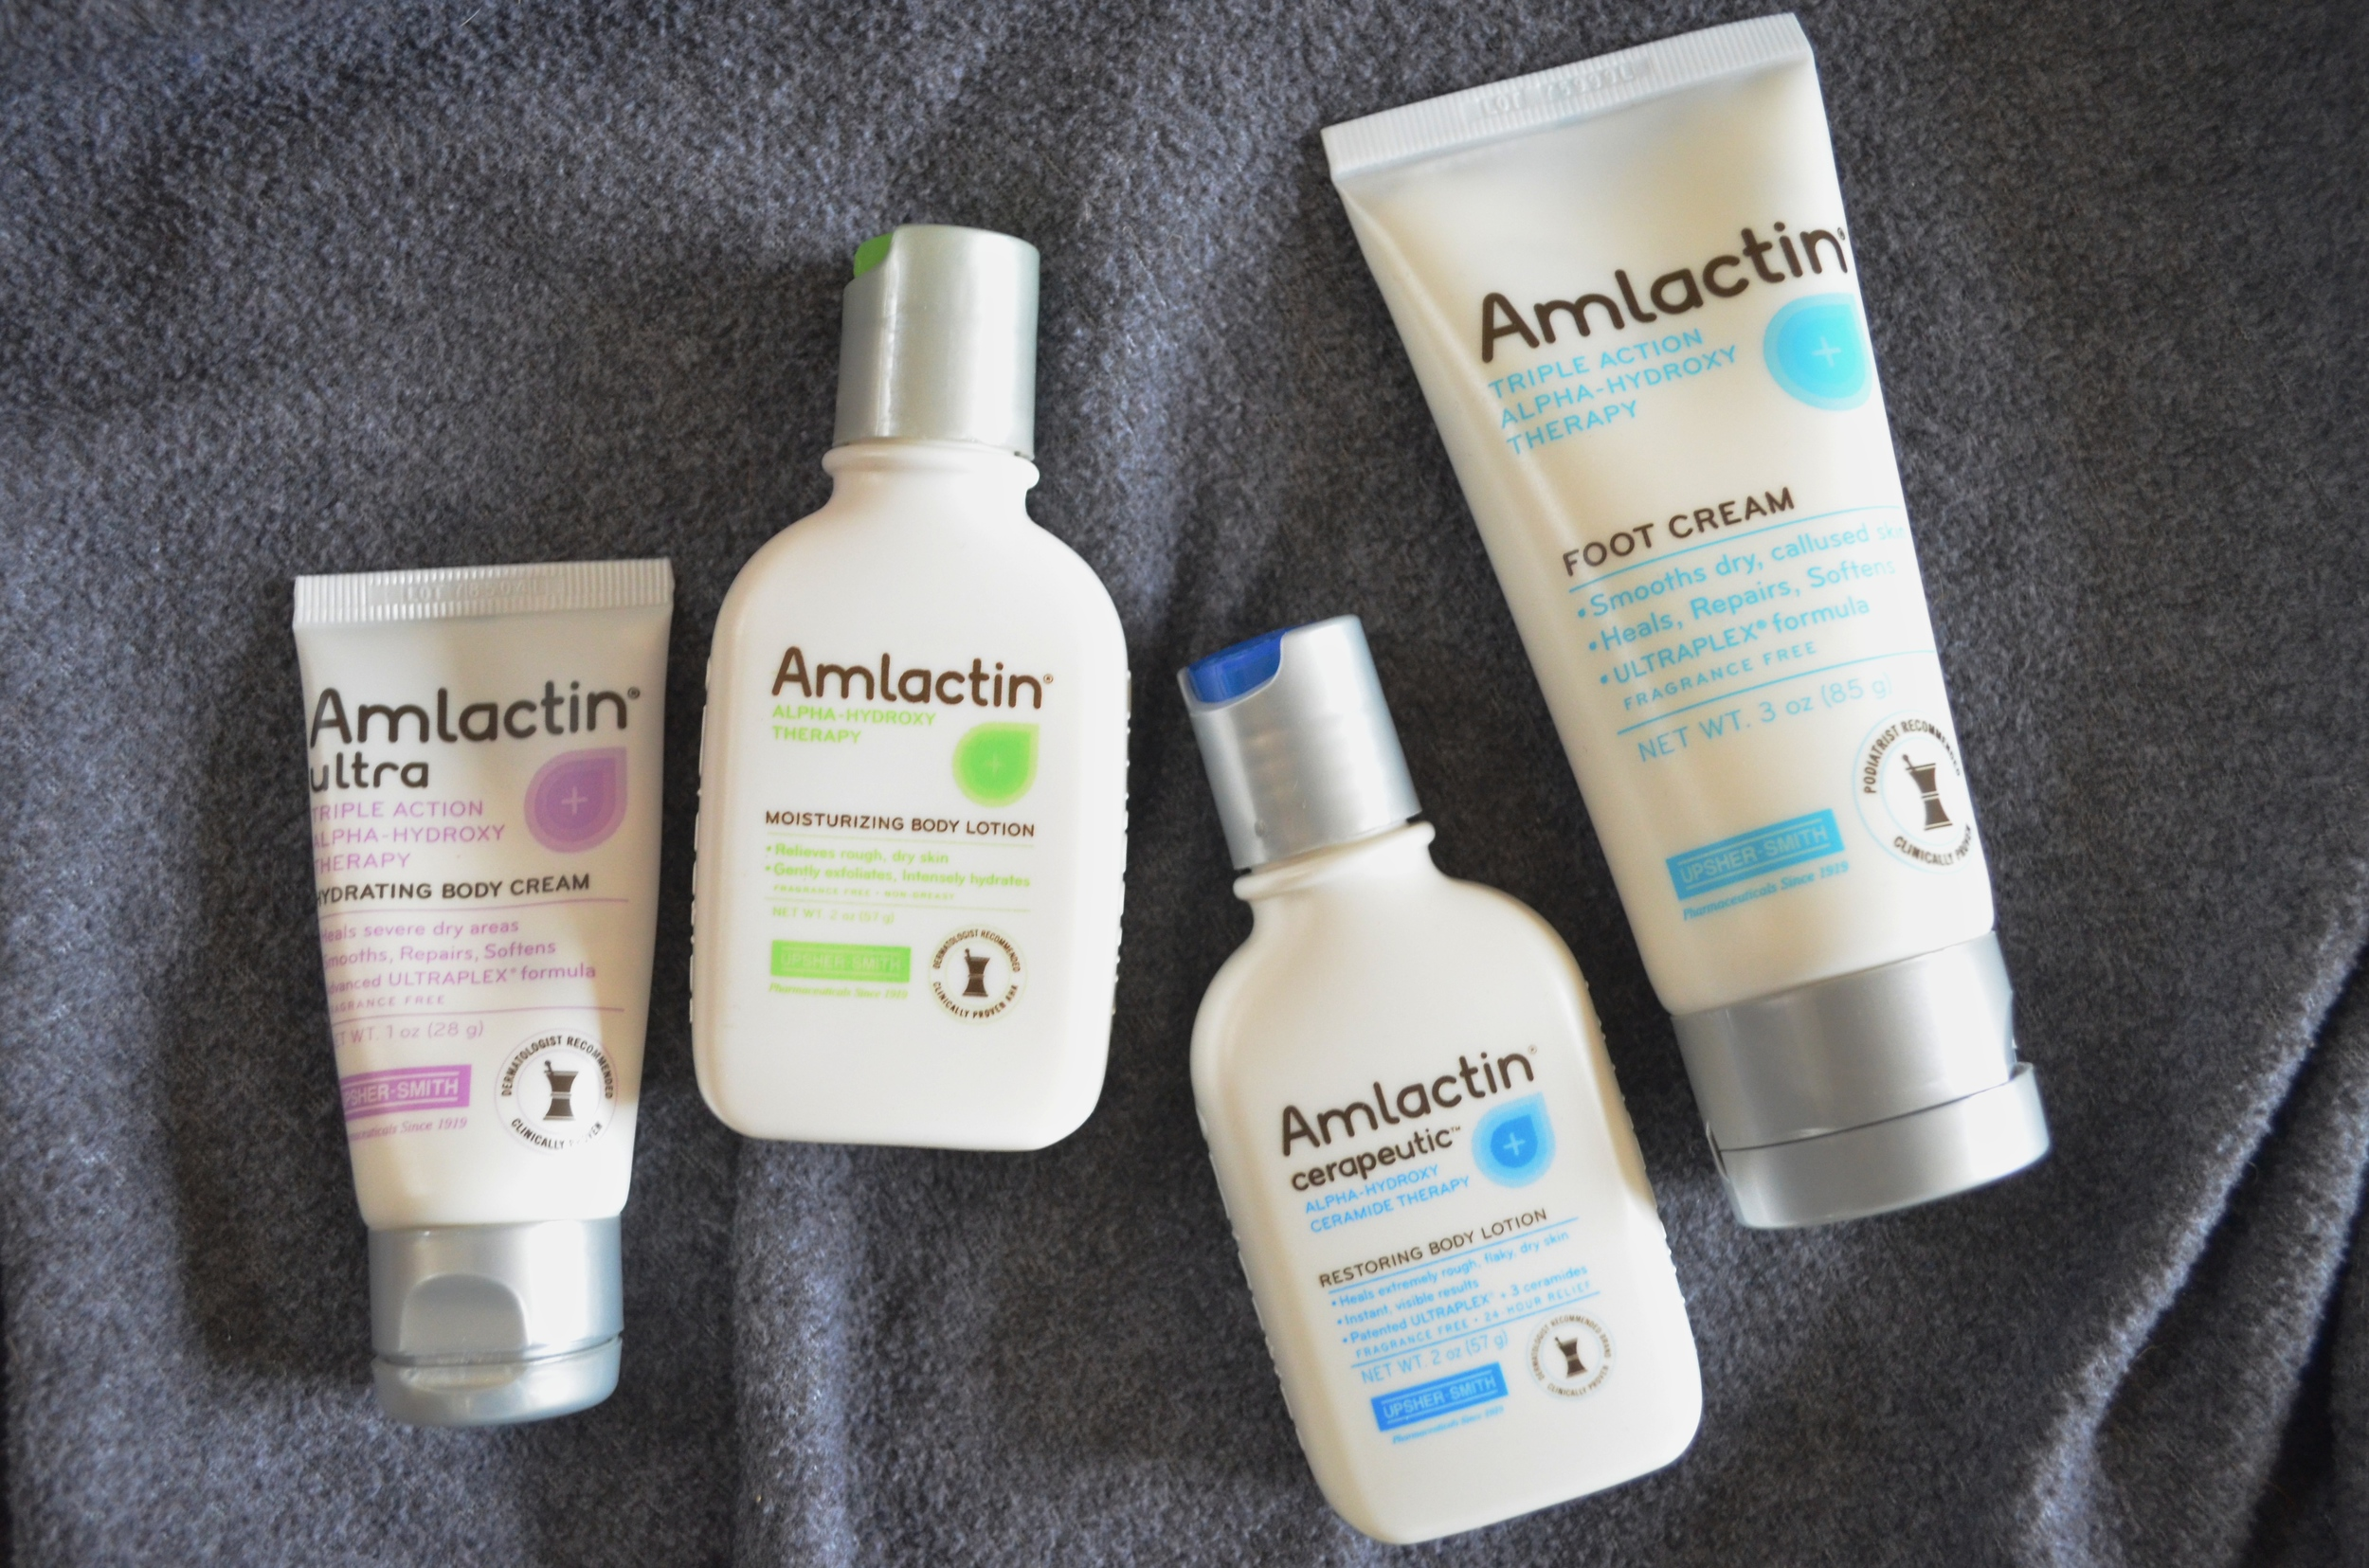 Amlactin Ultra Hydrating Body Cream review, Amlactin Moisturizing Body Lotion Review, Amlactin Cerapeutic Restoring Body Lotion review, Amlactin Foot Cream Review